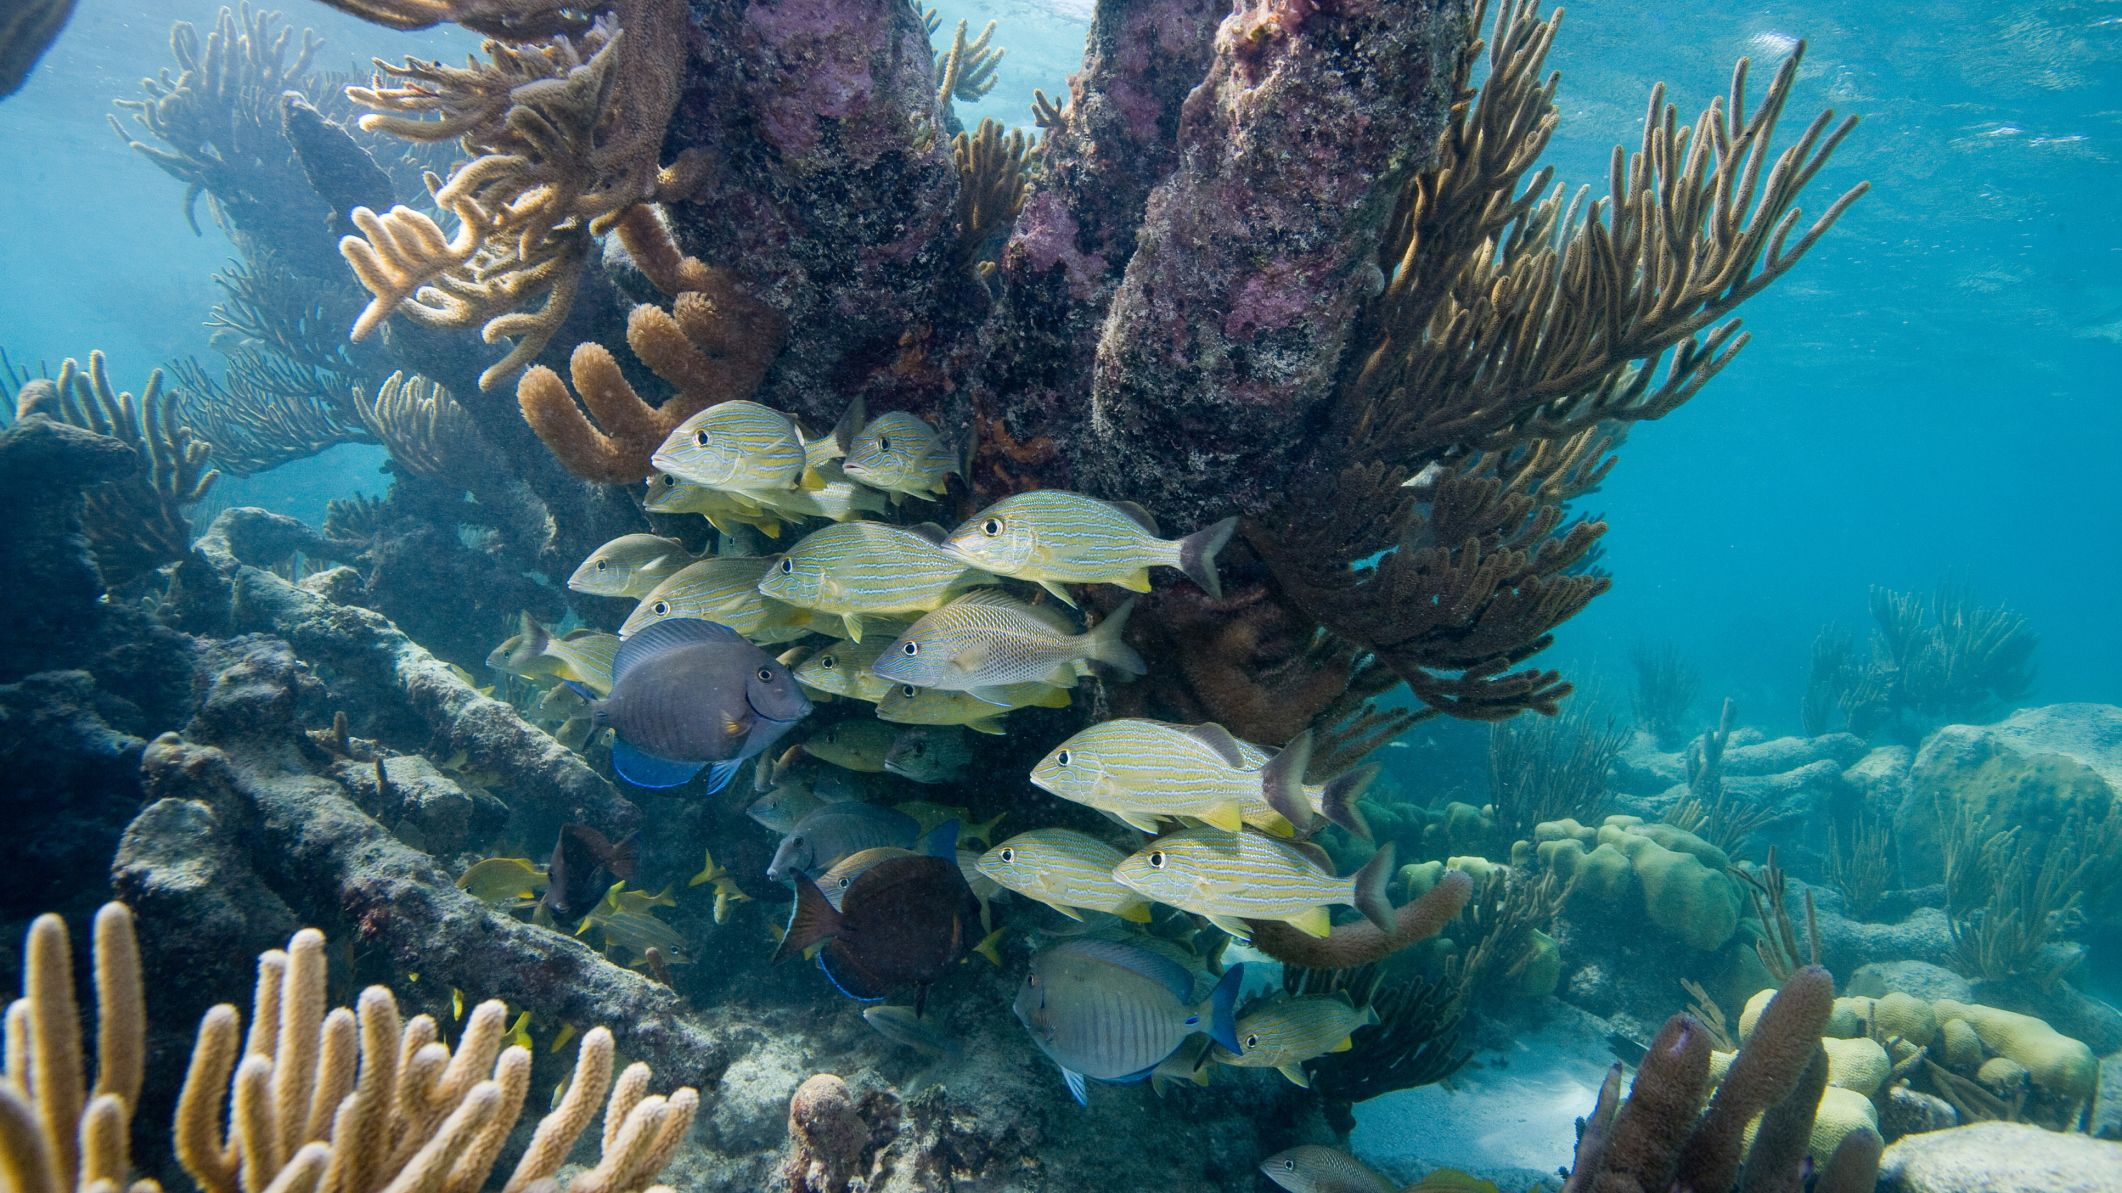 Tropical fish swimming amongst coral in Cancun